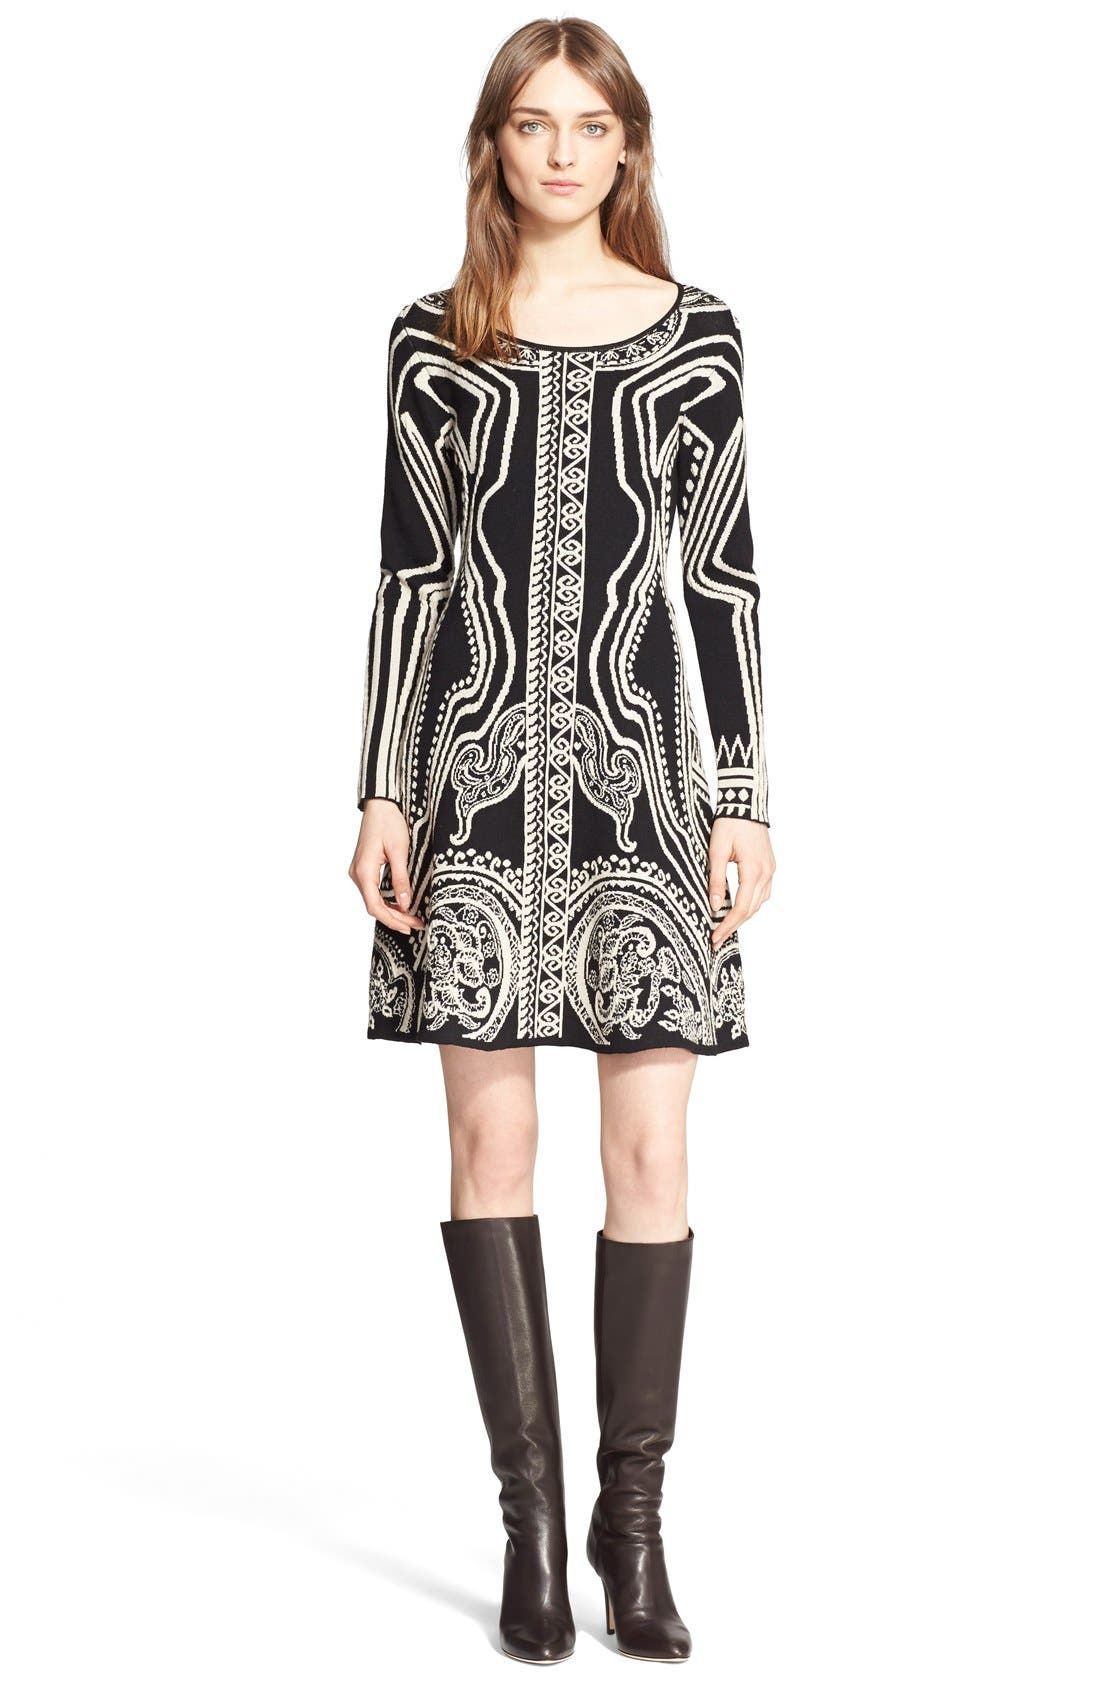 Alternate Image 1 Selected - Etro Paisley Intarsia Knit Long Sleeve Dress